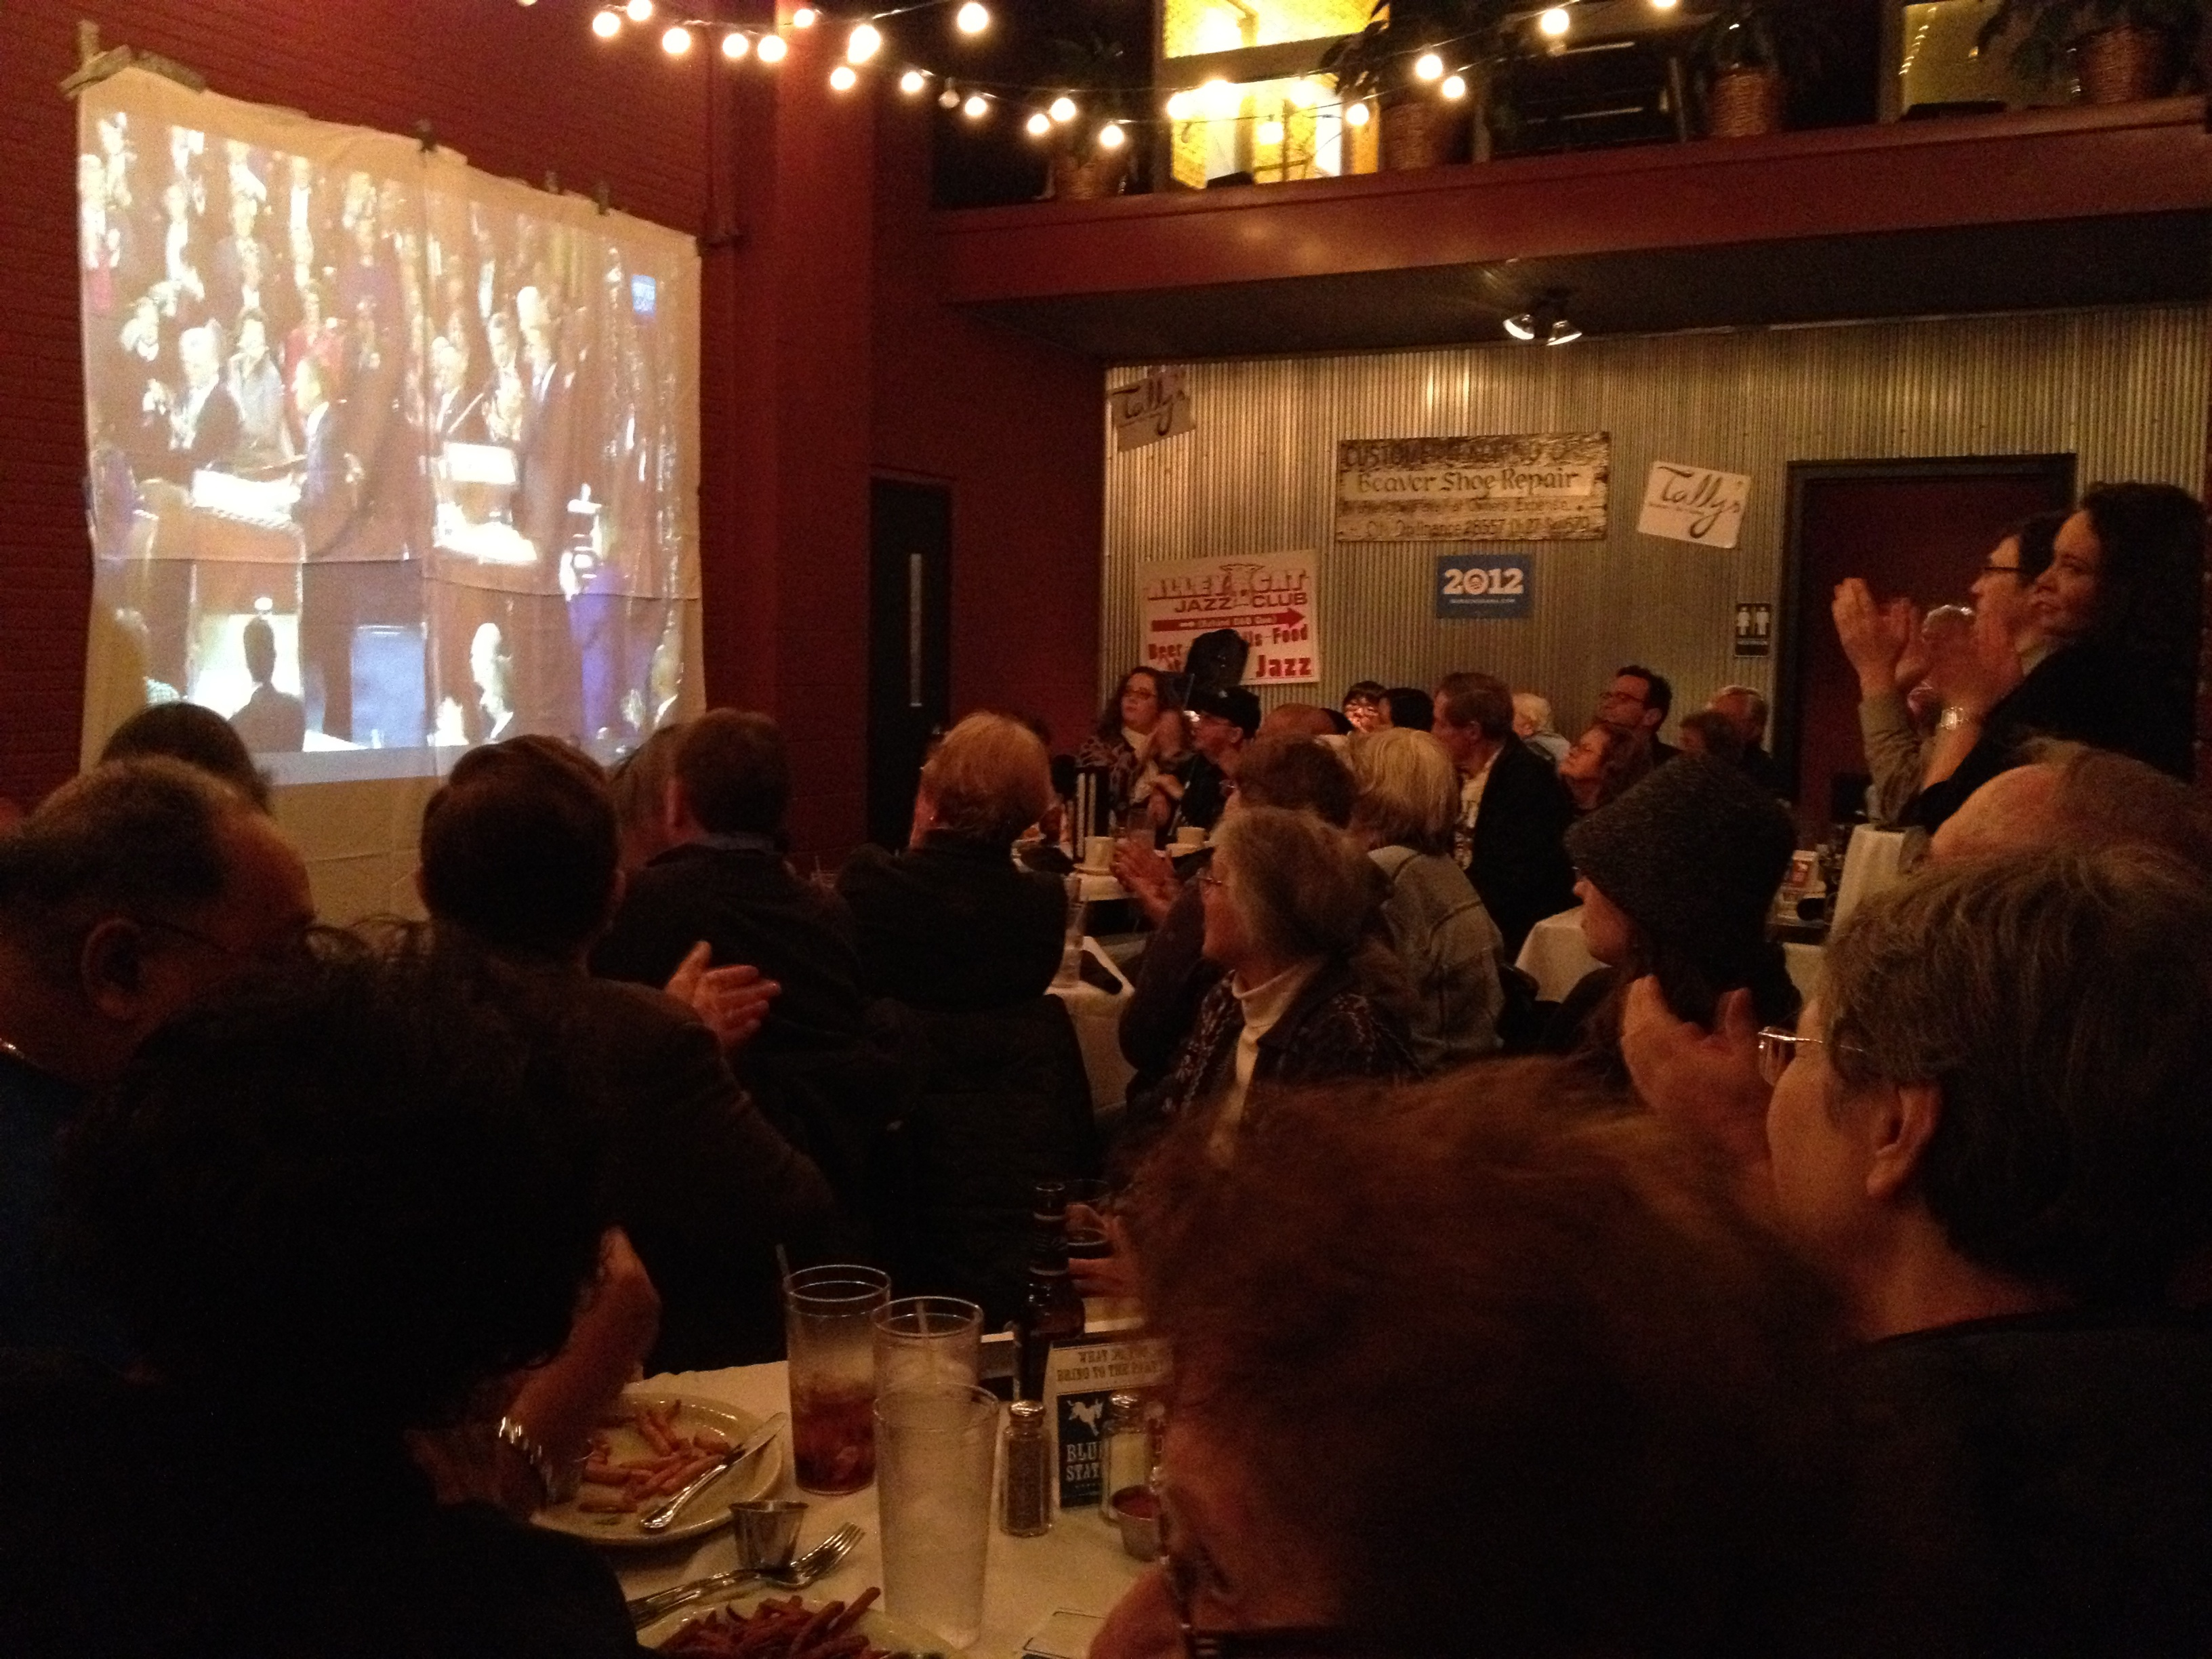 Beaverdale SOTU Party - Cheers for POTUS